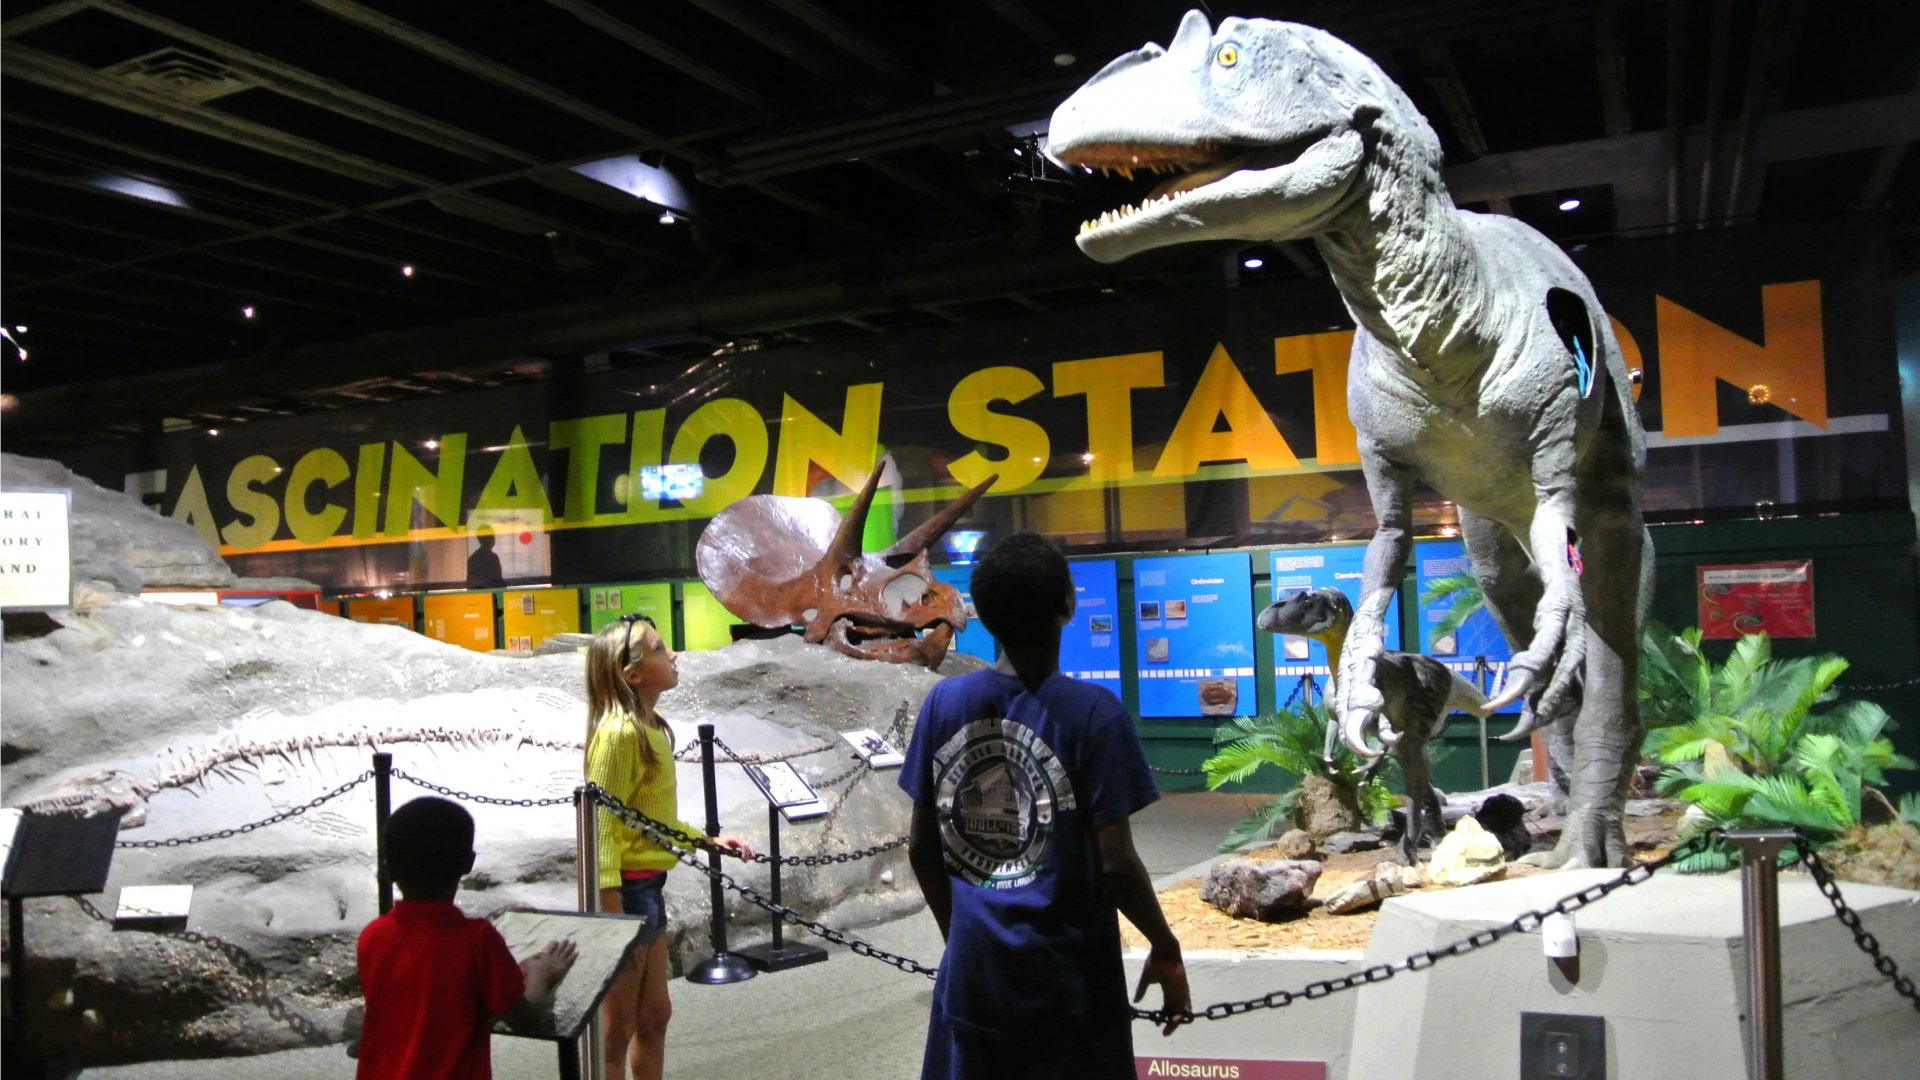 What to do in canton ohio attractions museums parks Dinosaur museum ohio